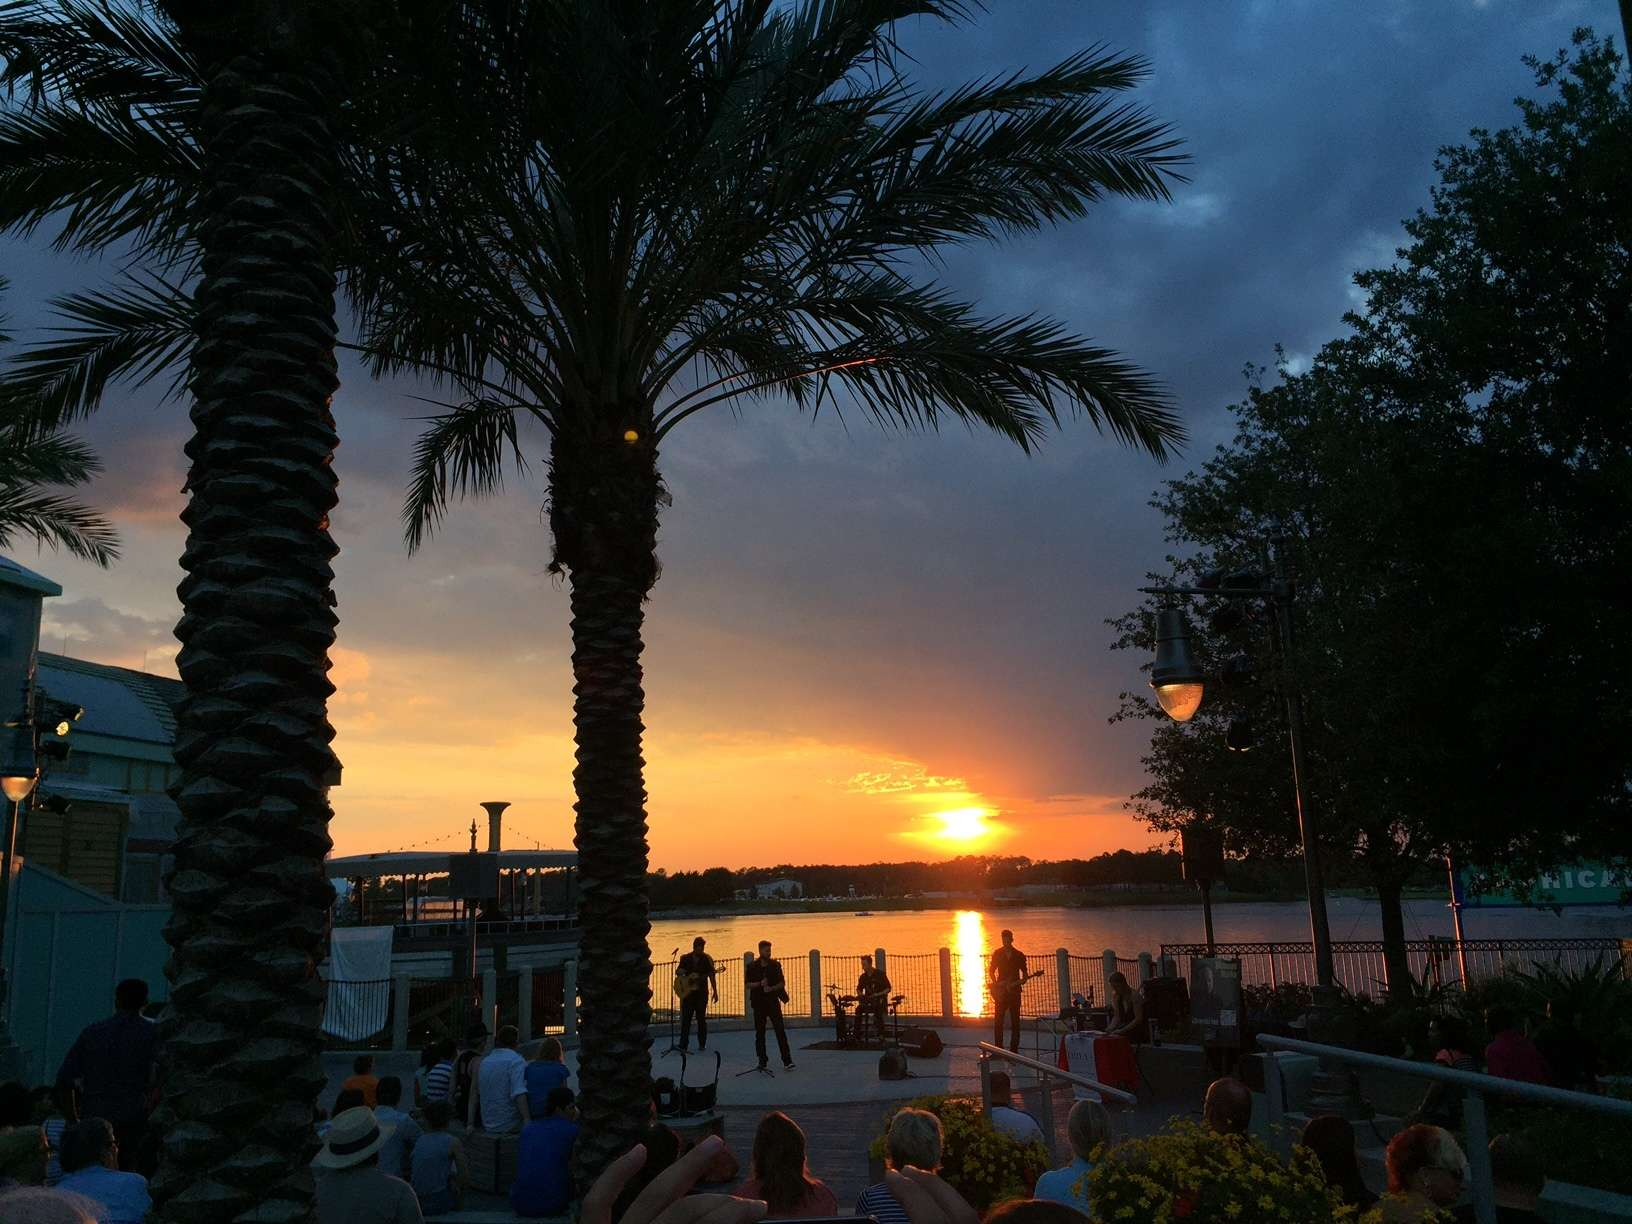 Is Disney Springs better than CityWalk?